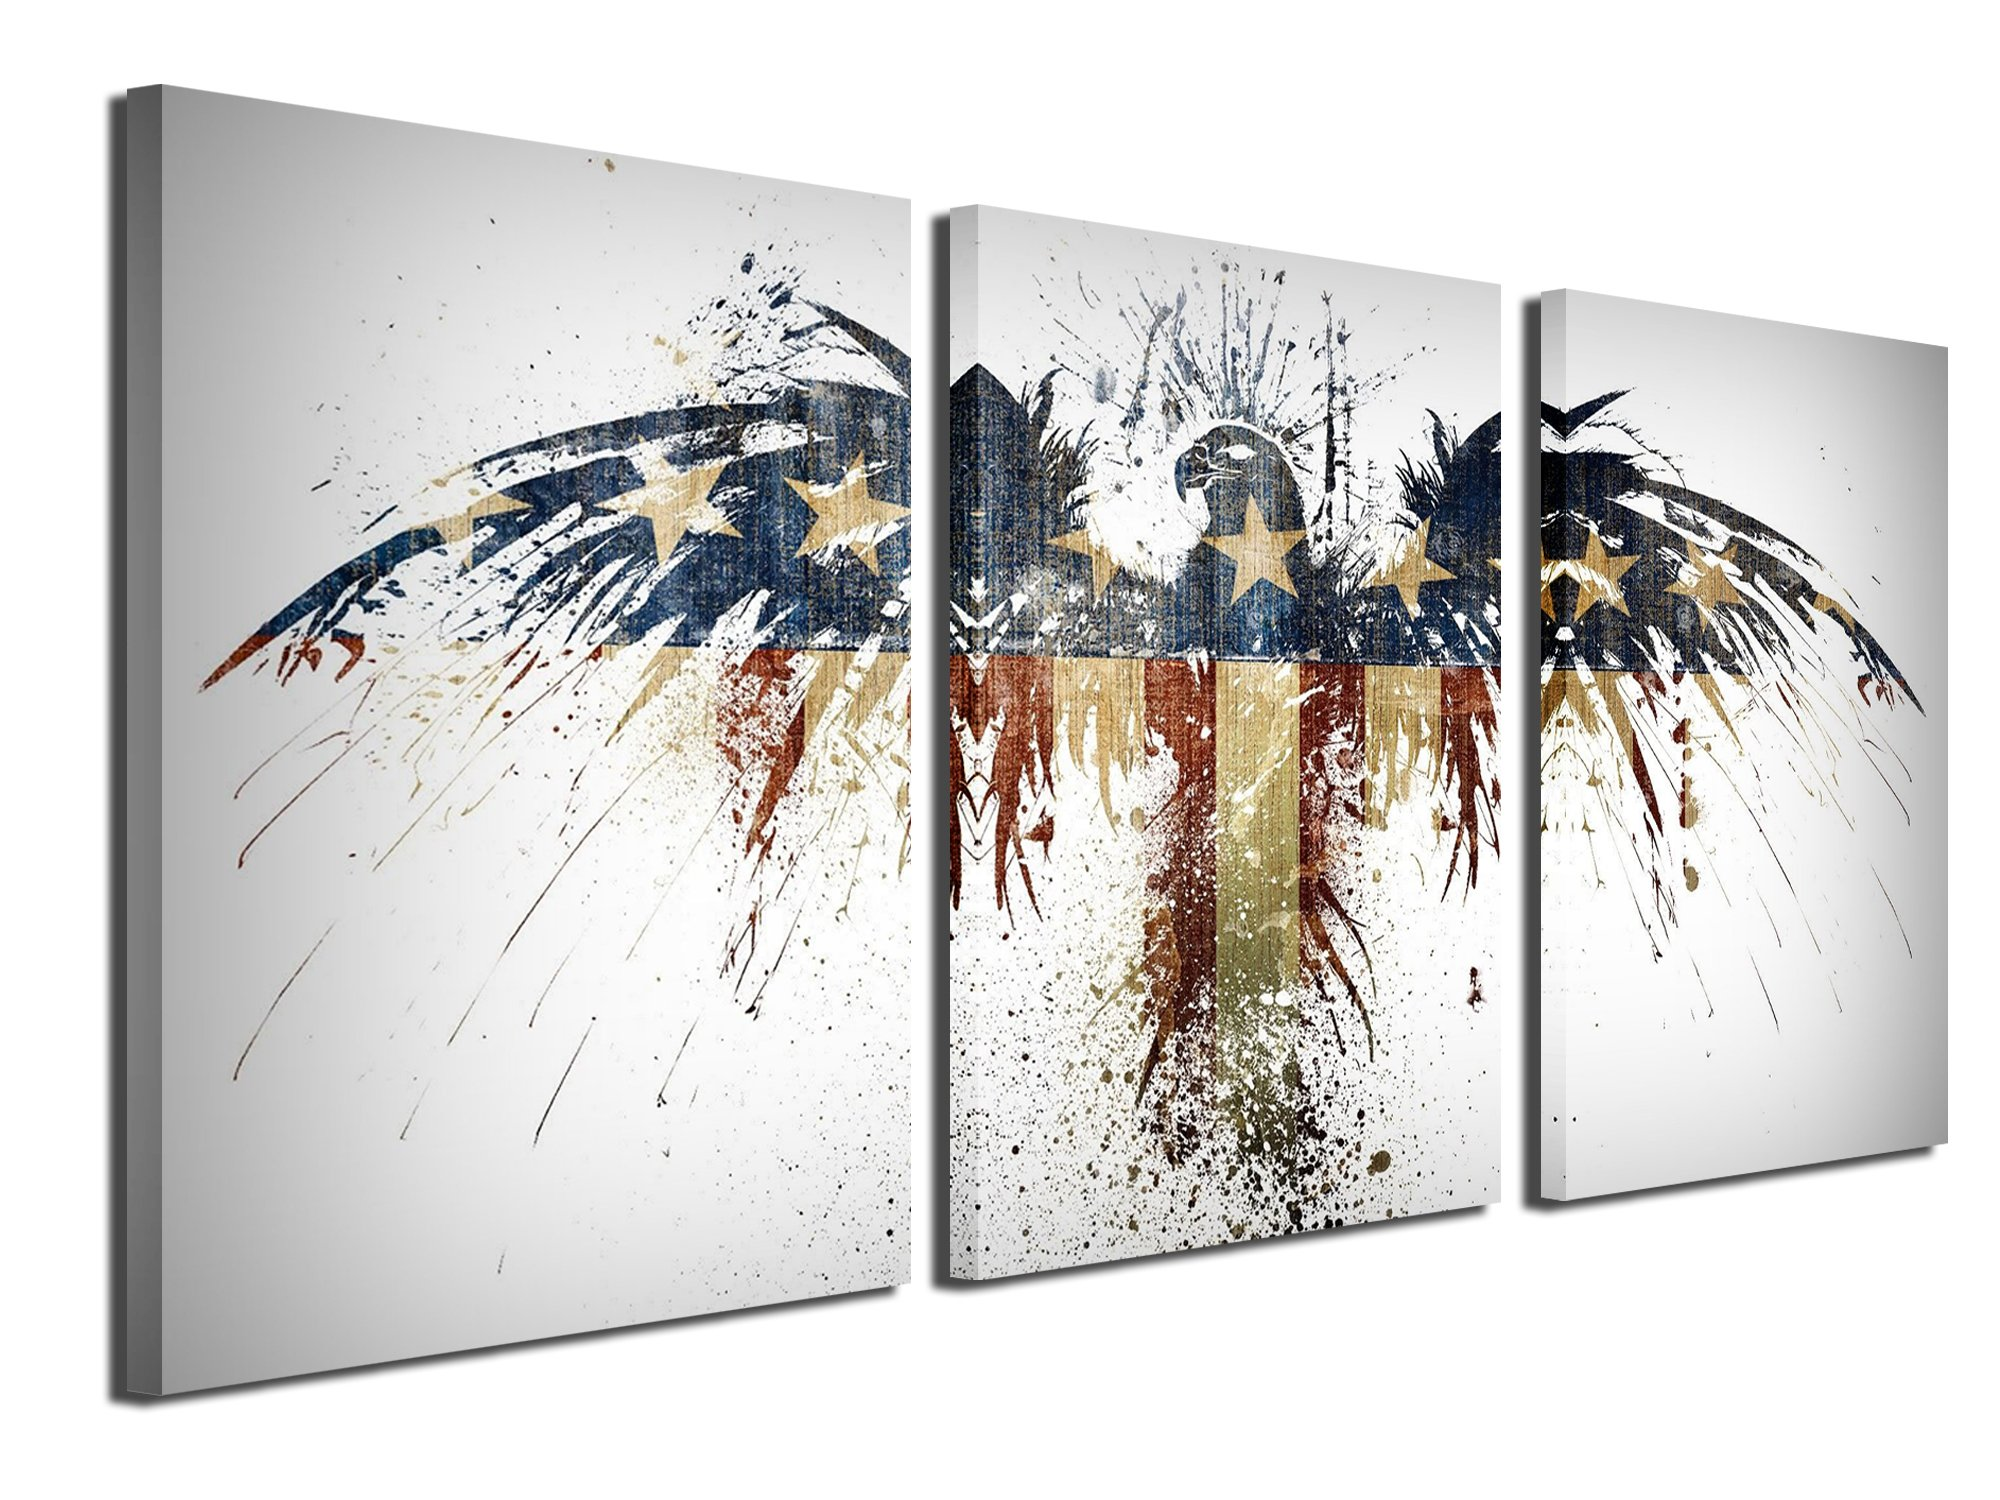 Gardenia Art America Flag with Eagle Canvas Prints Wall Art Paintings Modern Wall Artworks Pictures for Room Decoration, 16x24 inch/piece, 3 Panels, Unframed